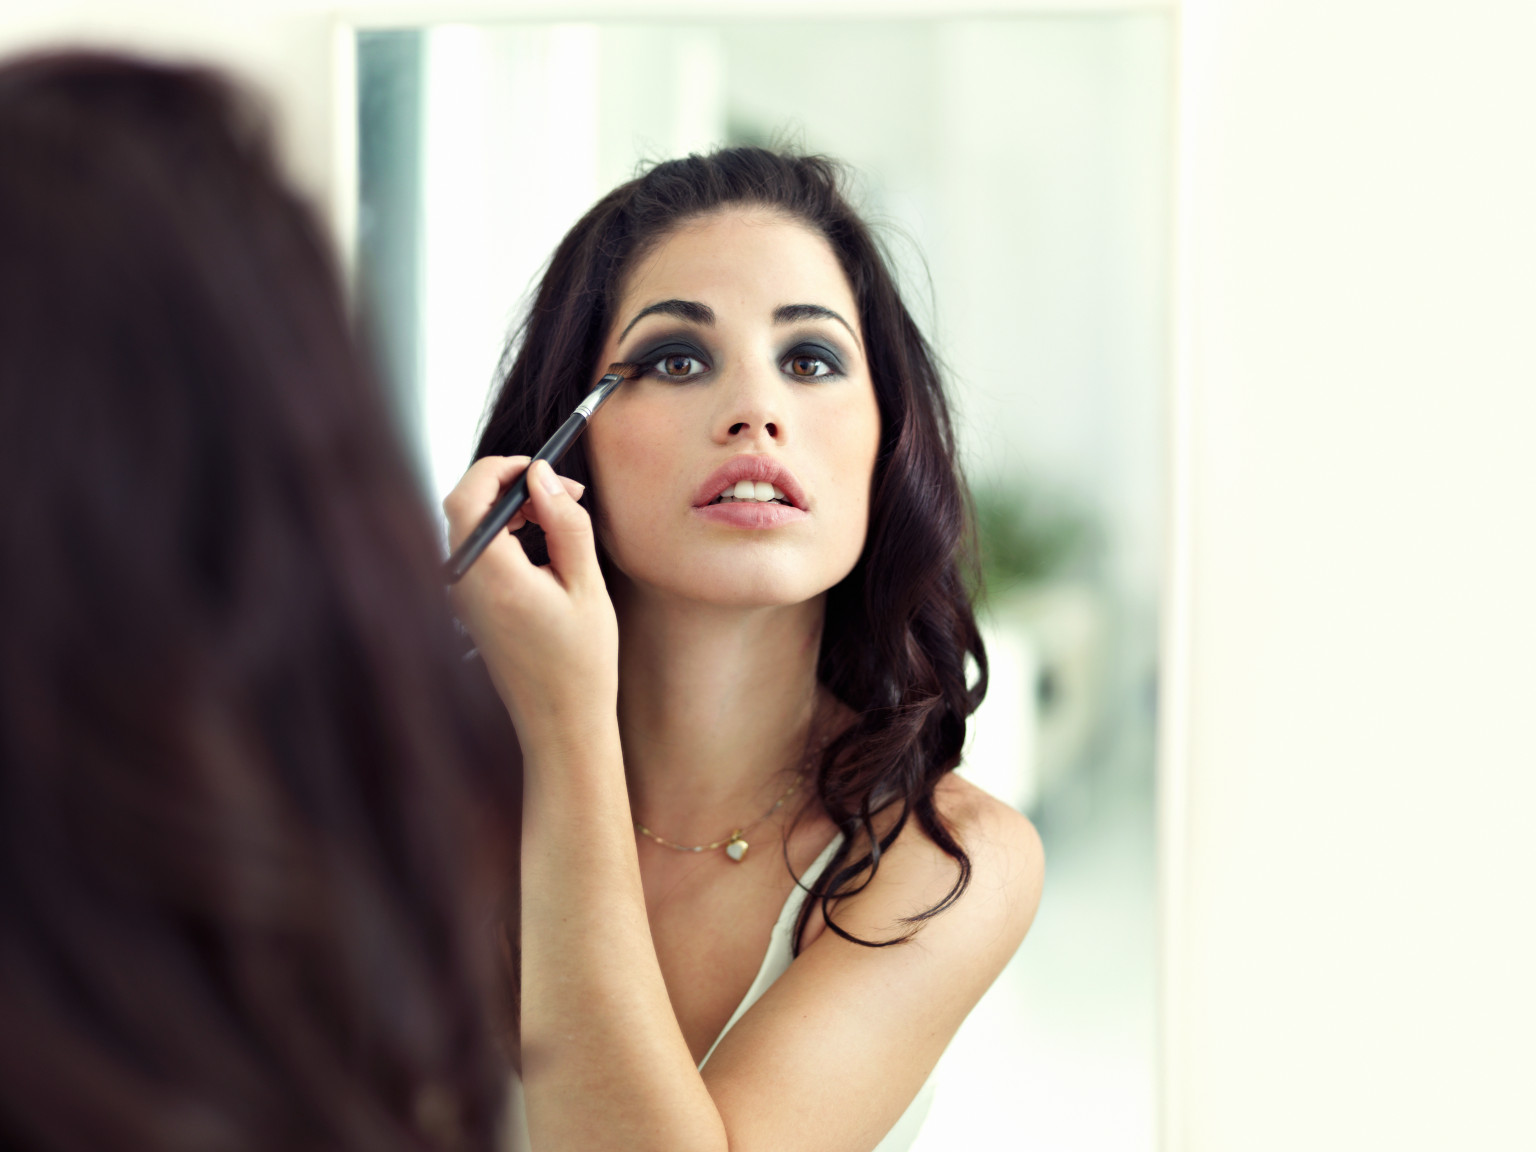 How to put makeup on like a model